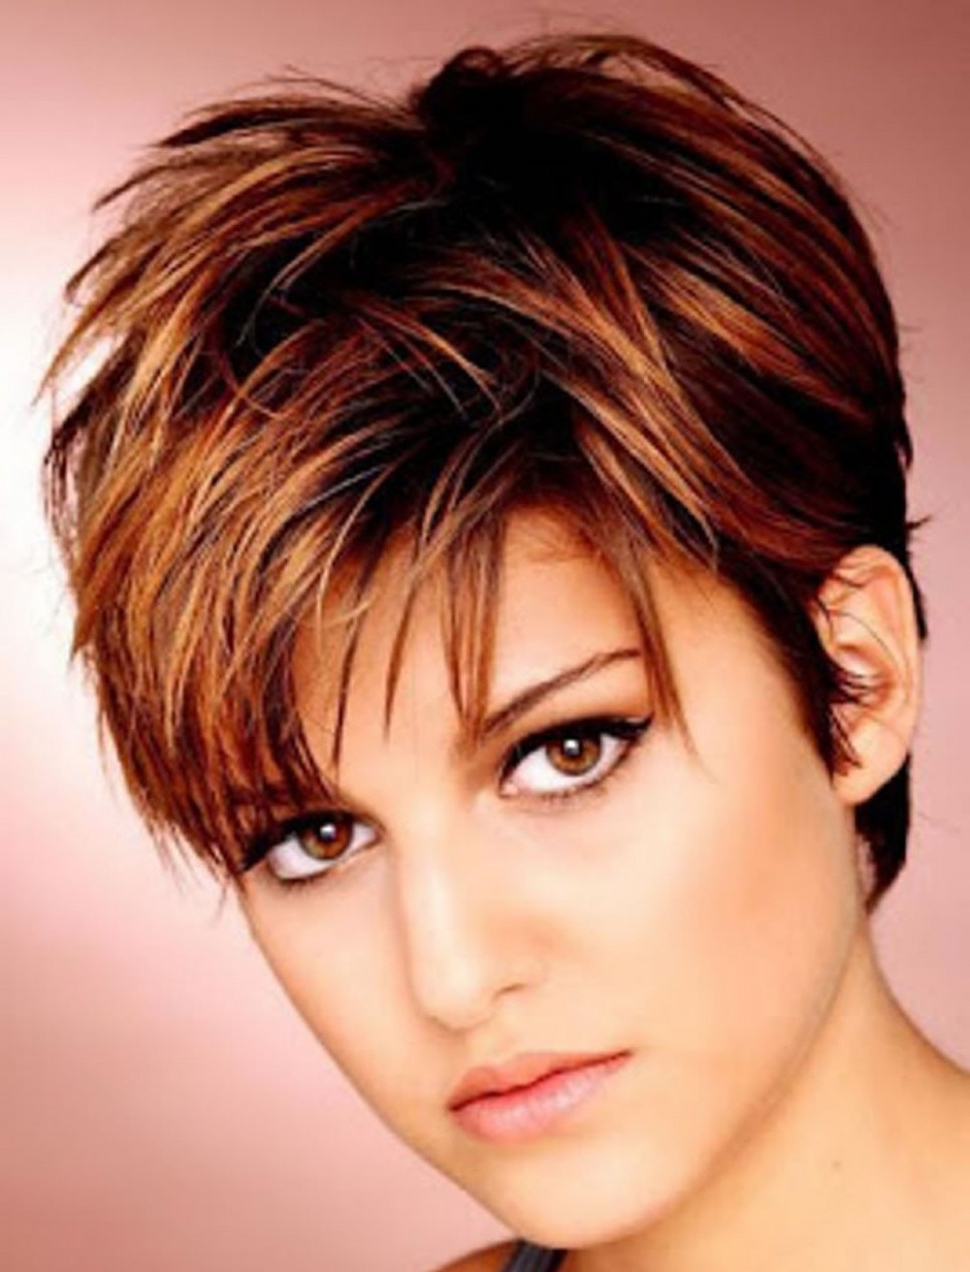 Short Hairstyles For Women With Round Faces And Glasses – Hair With Regard To Short Hairstyles For Round Faces And Glasses (View 5 of 25)